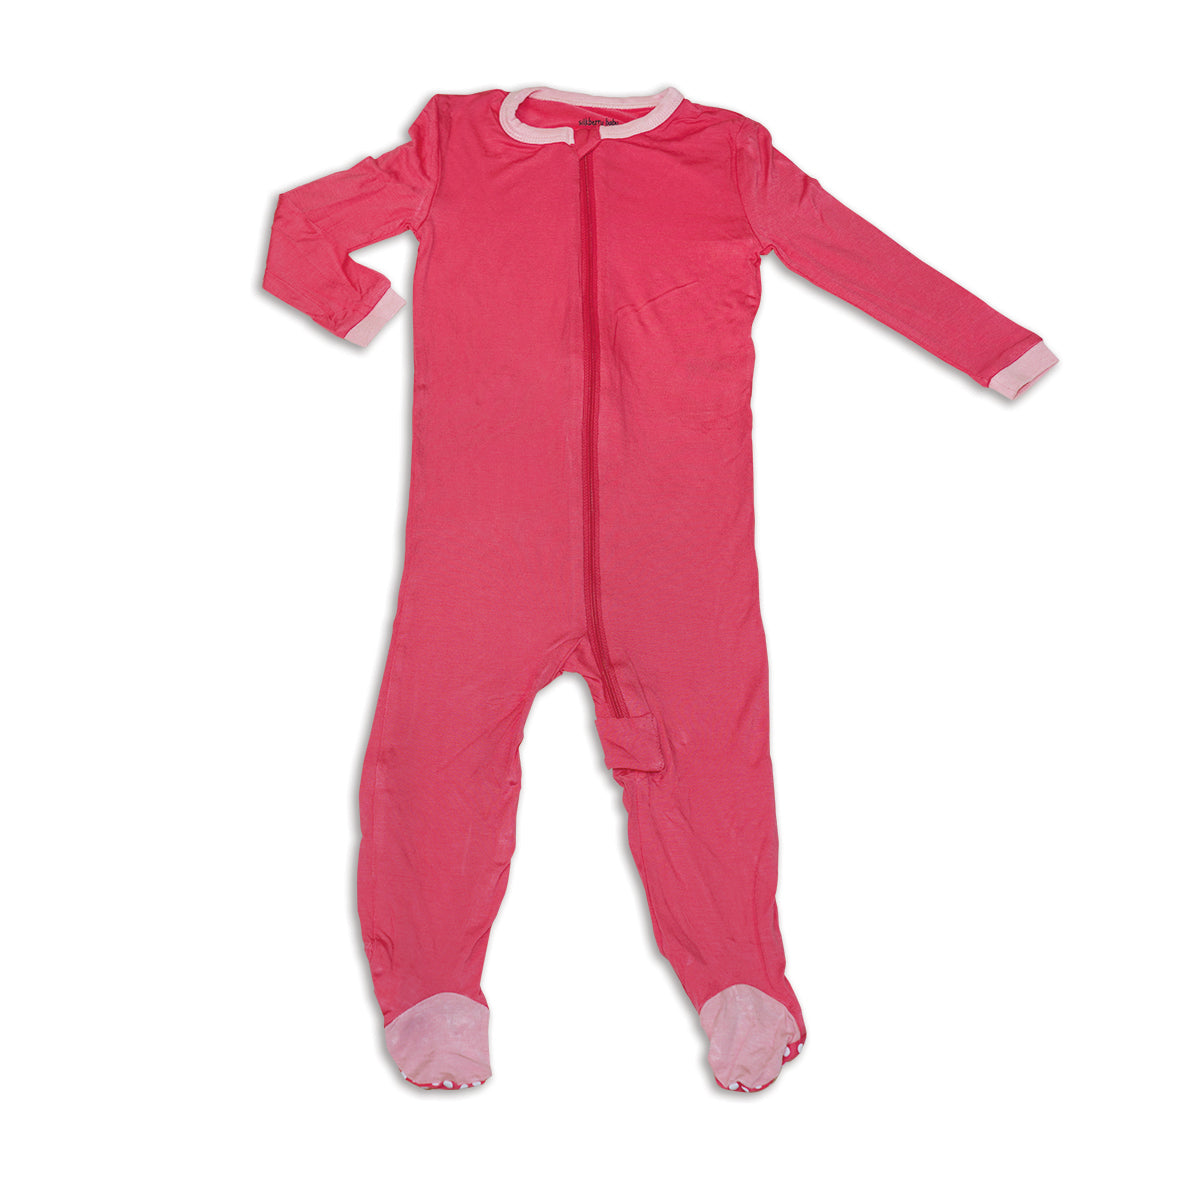 Bamboo Zip up Footed Sleeper (Coral Crush)